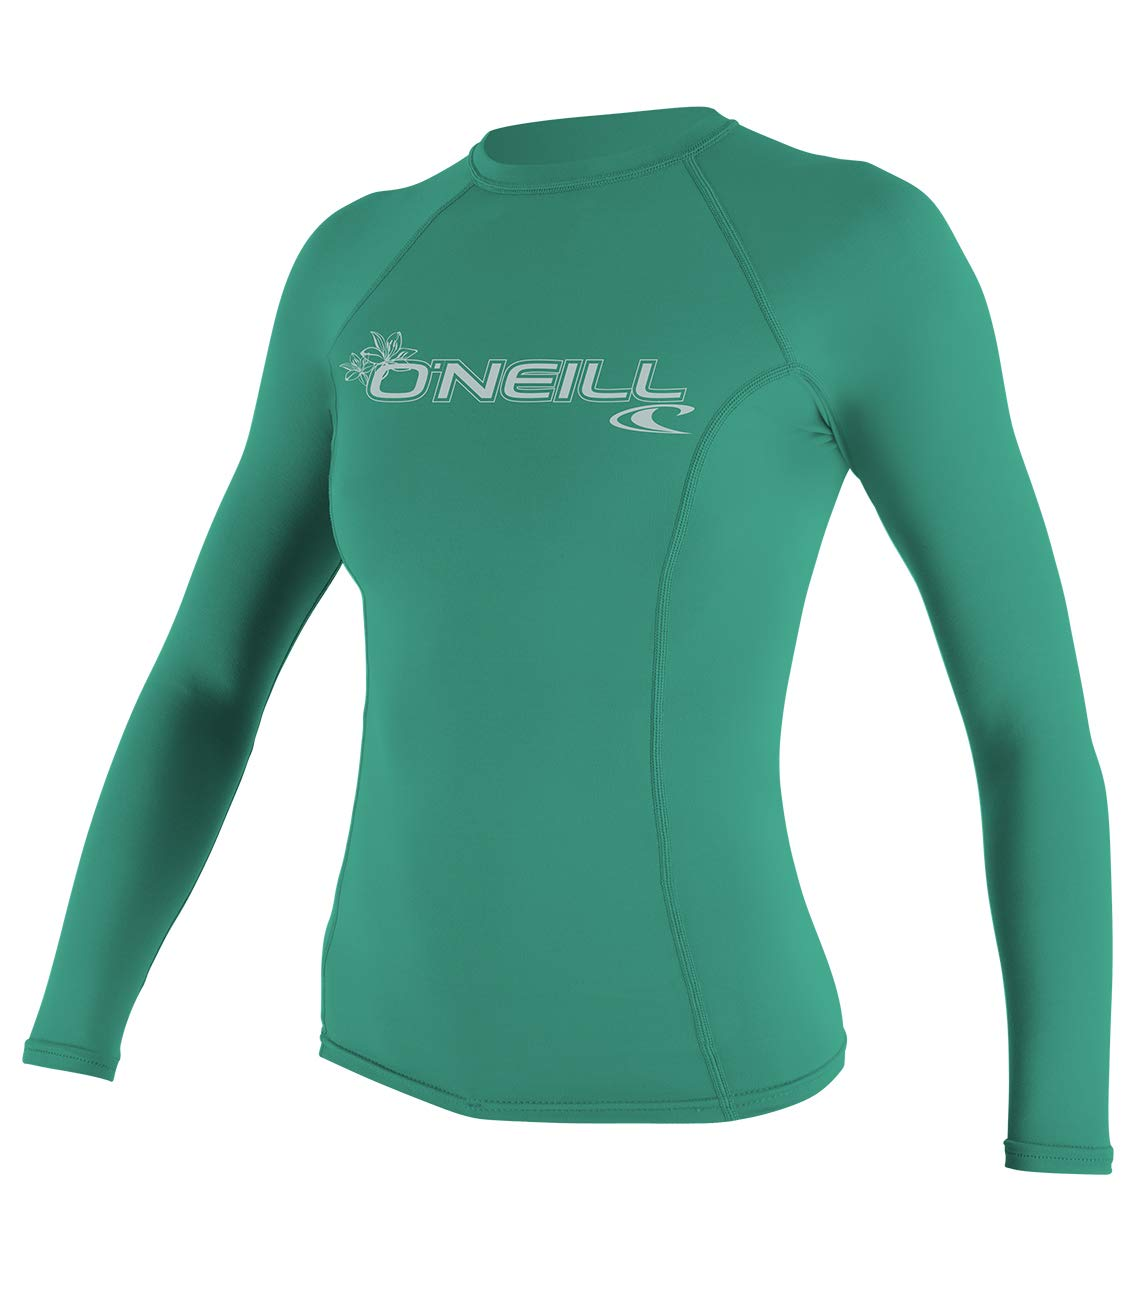 O'Neill UV 50+ Sun Protection Womens Basic Skins Long Sleeve Crew Sun Shirt Rash Guard, Seaglass, X-Large by O'Neill Wetsuits